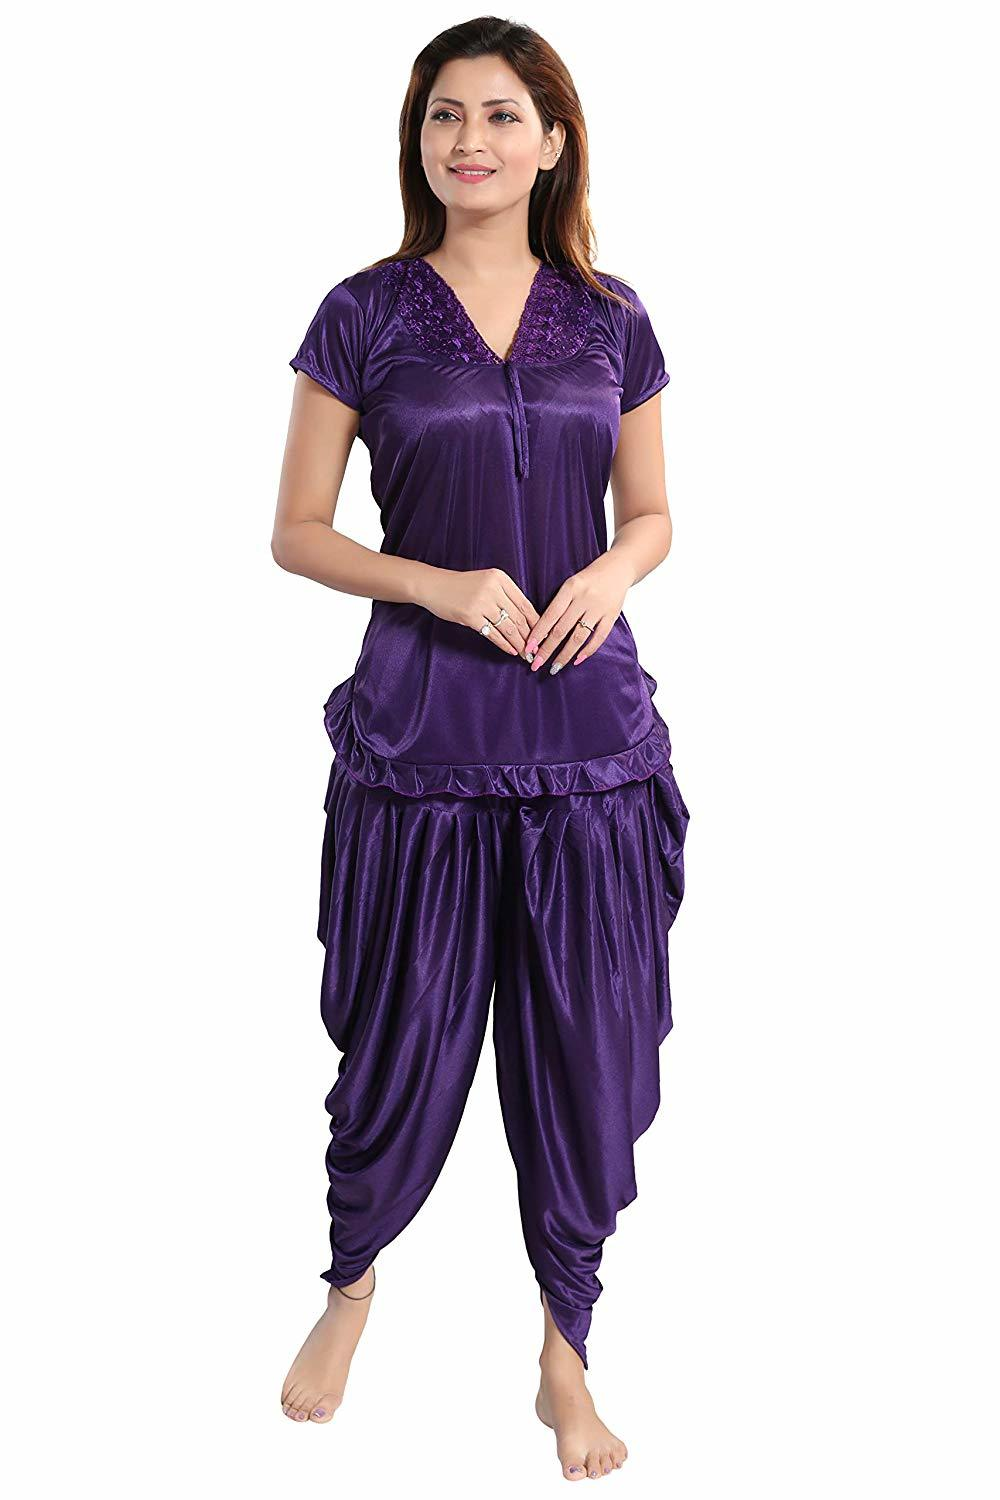 satin patiala night suit